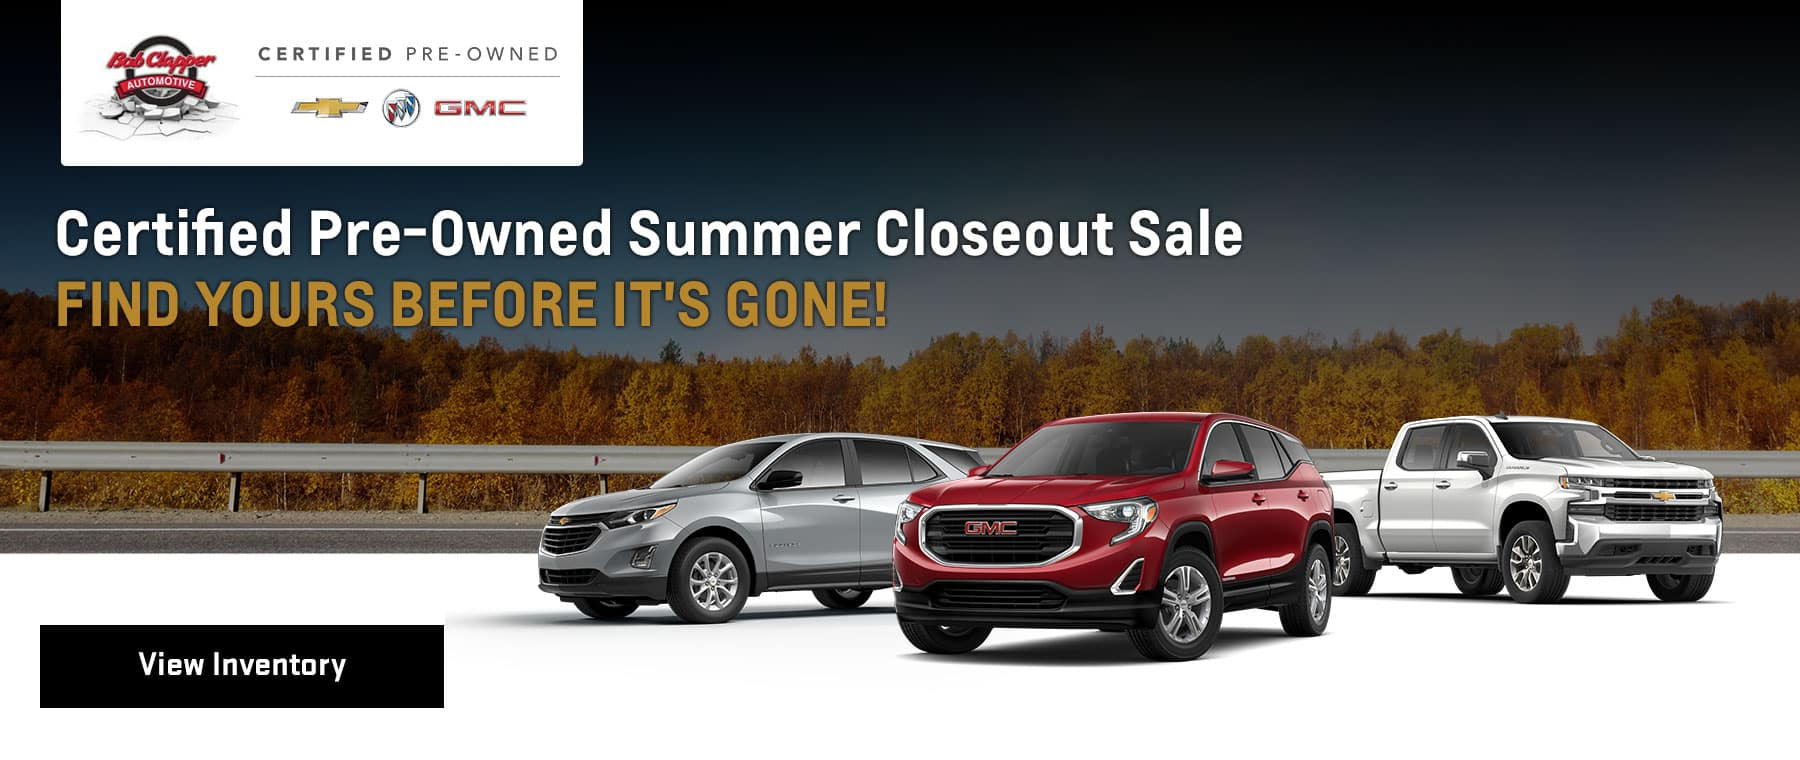 Certified Pre-Owned Summer Closeout Sale Subtext - Find Yours Before It's Gone!